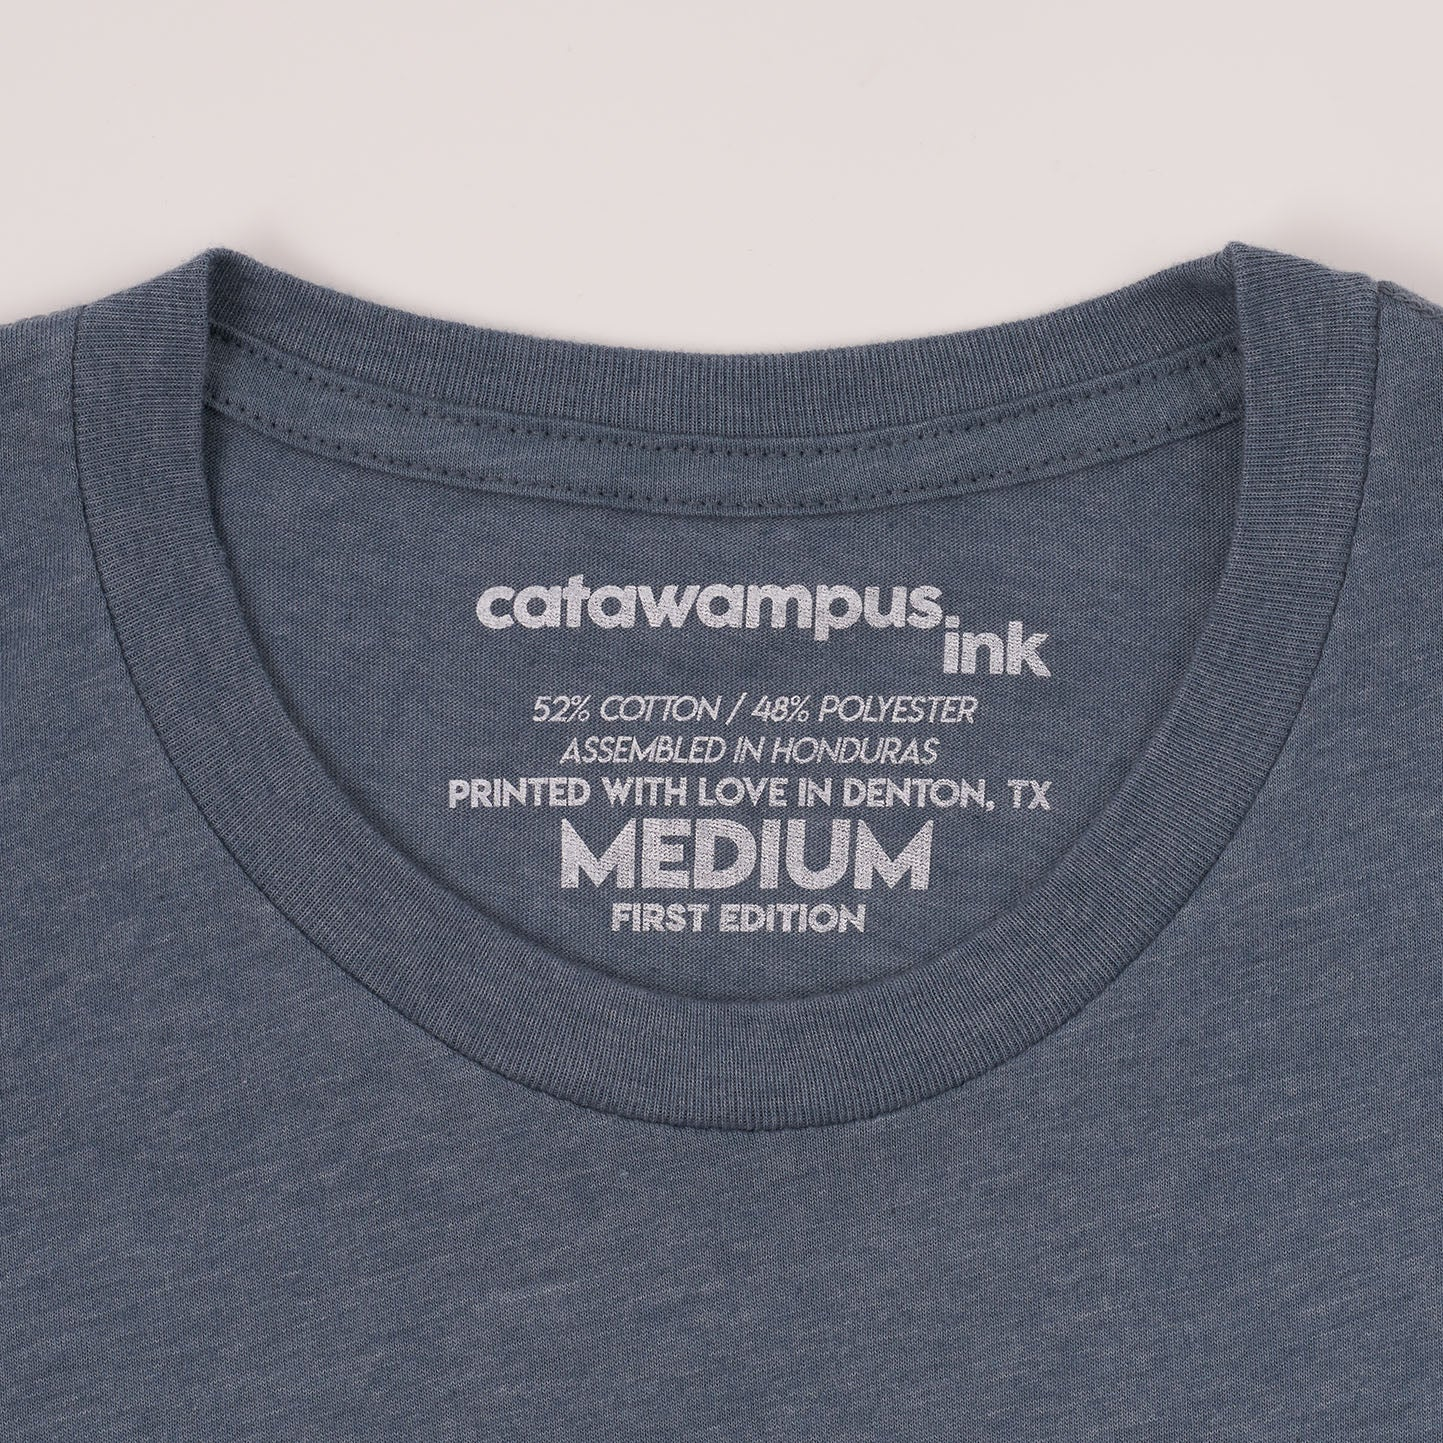 Verily, a Catawampus! - T Shirt